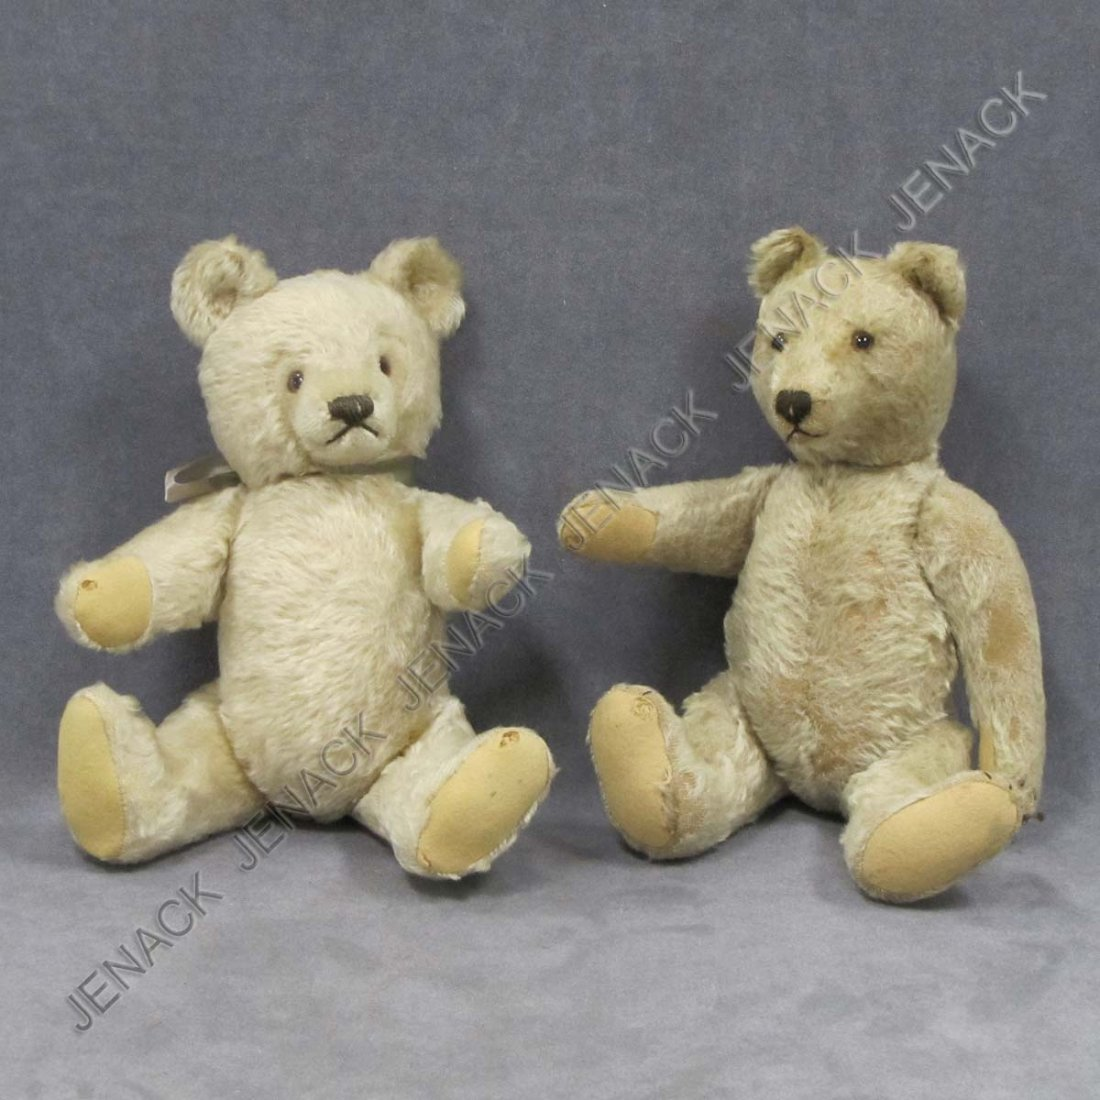 3: LOT (2) VINTAGE TEDDY BEARS WITH GLASS EYES